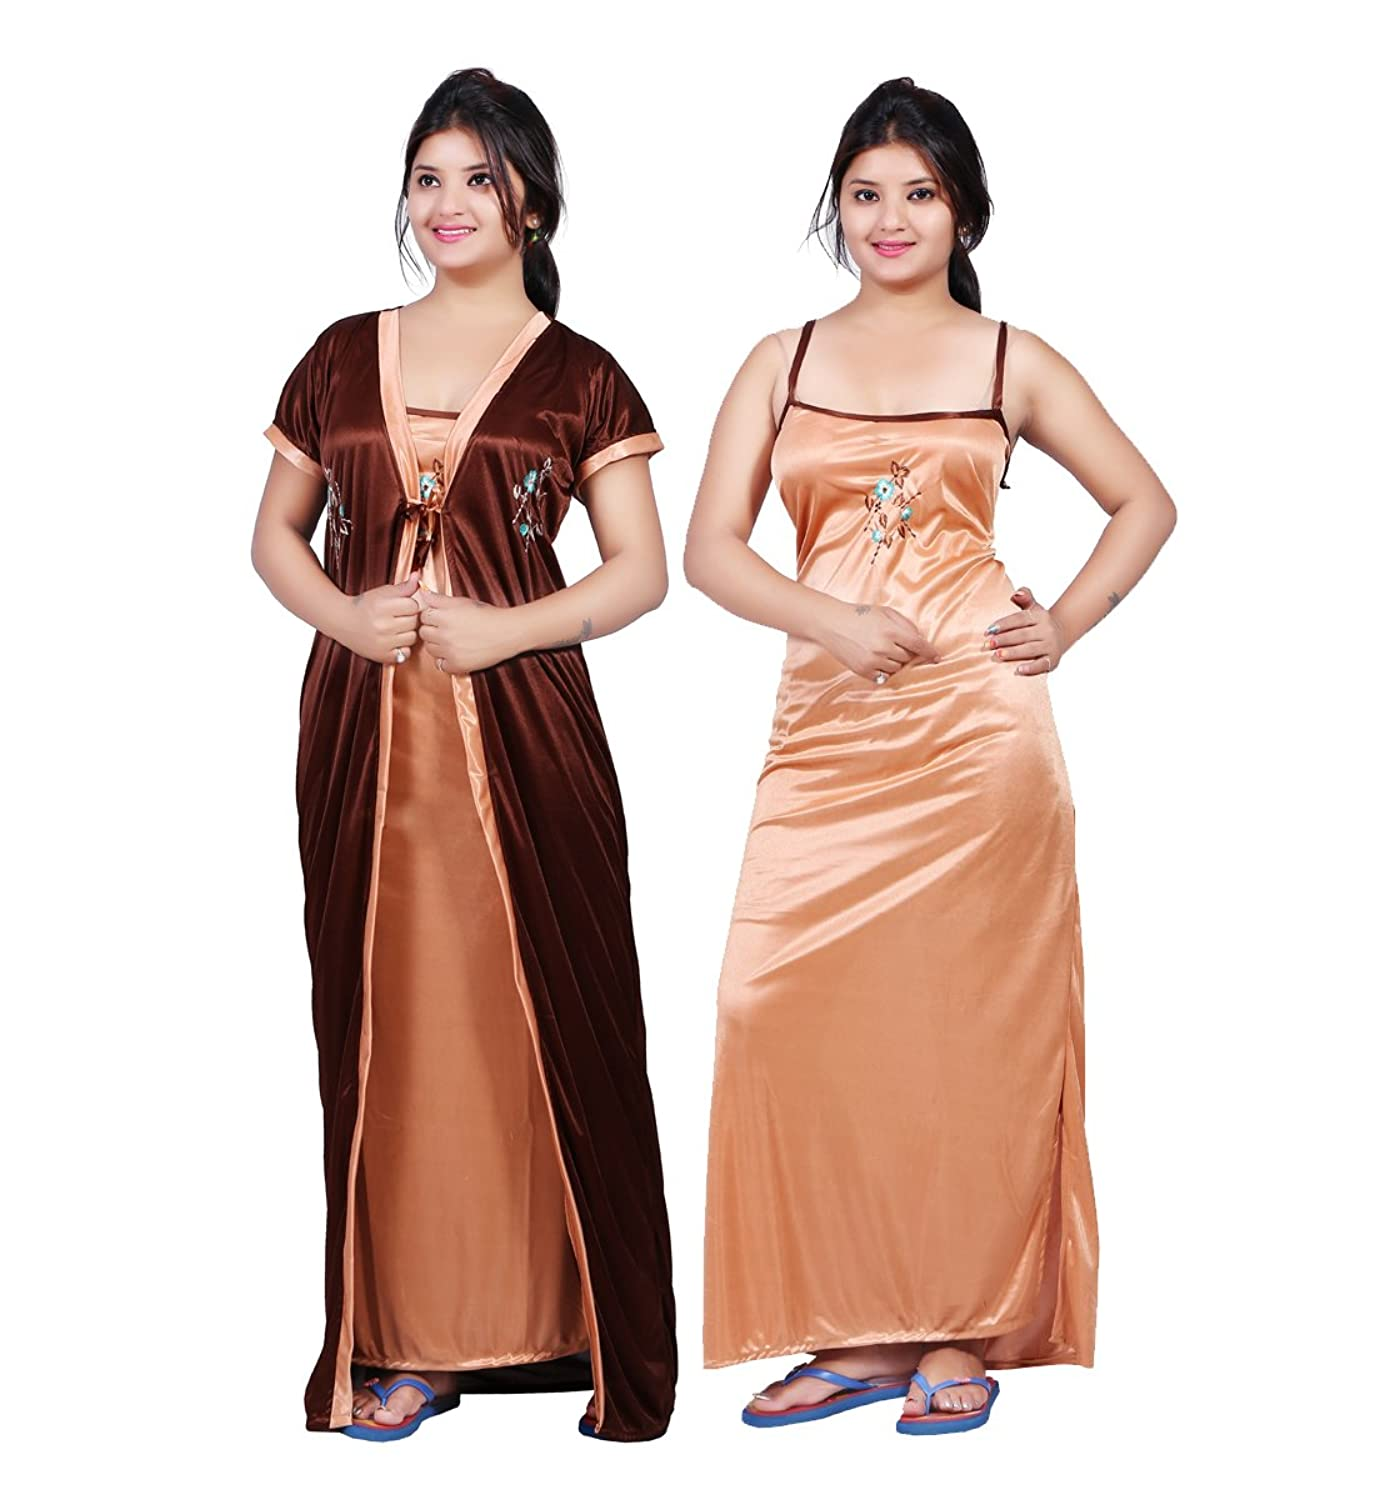 fc6ef653d44 Nighties   Nightdresses  Buy nightdresses online for women in India ...